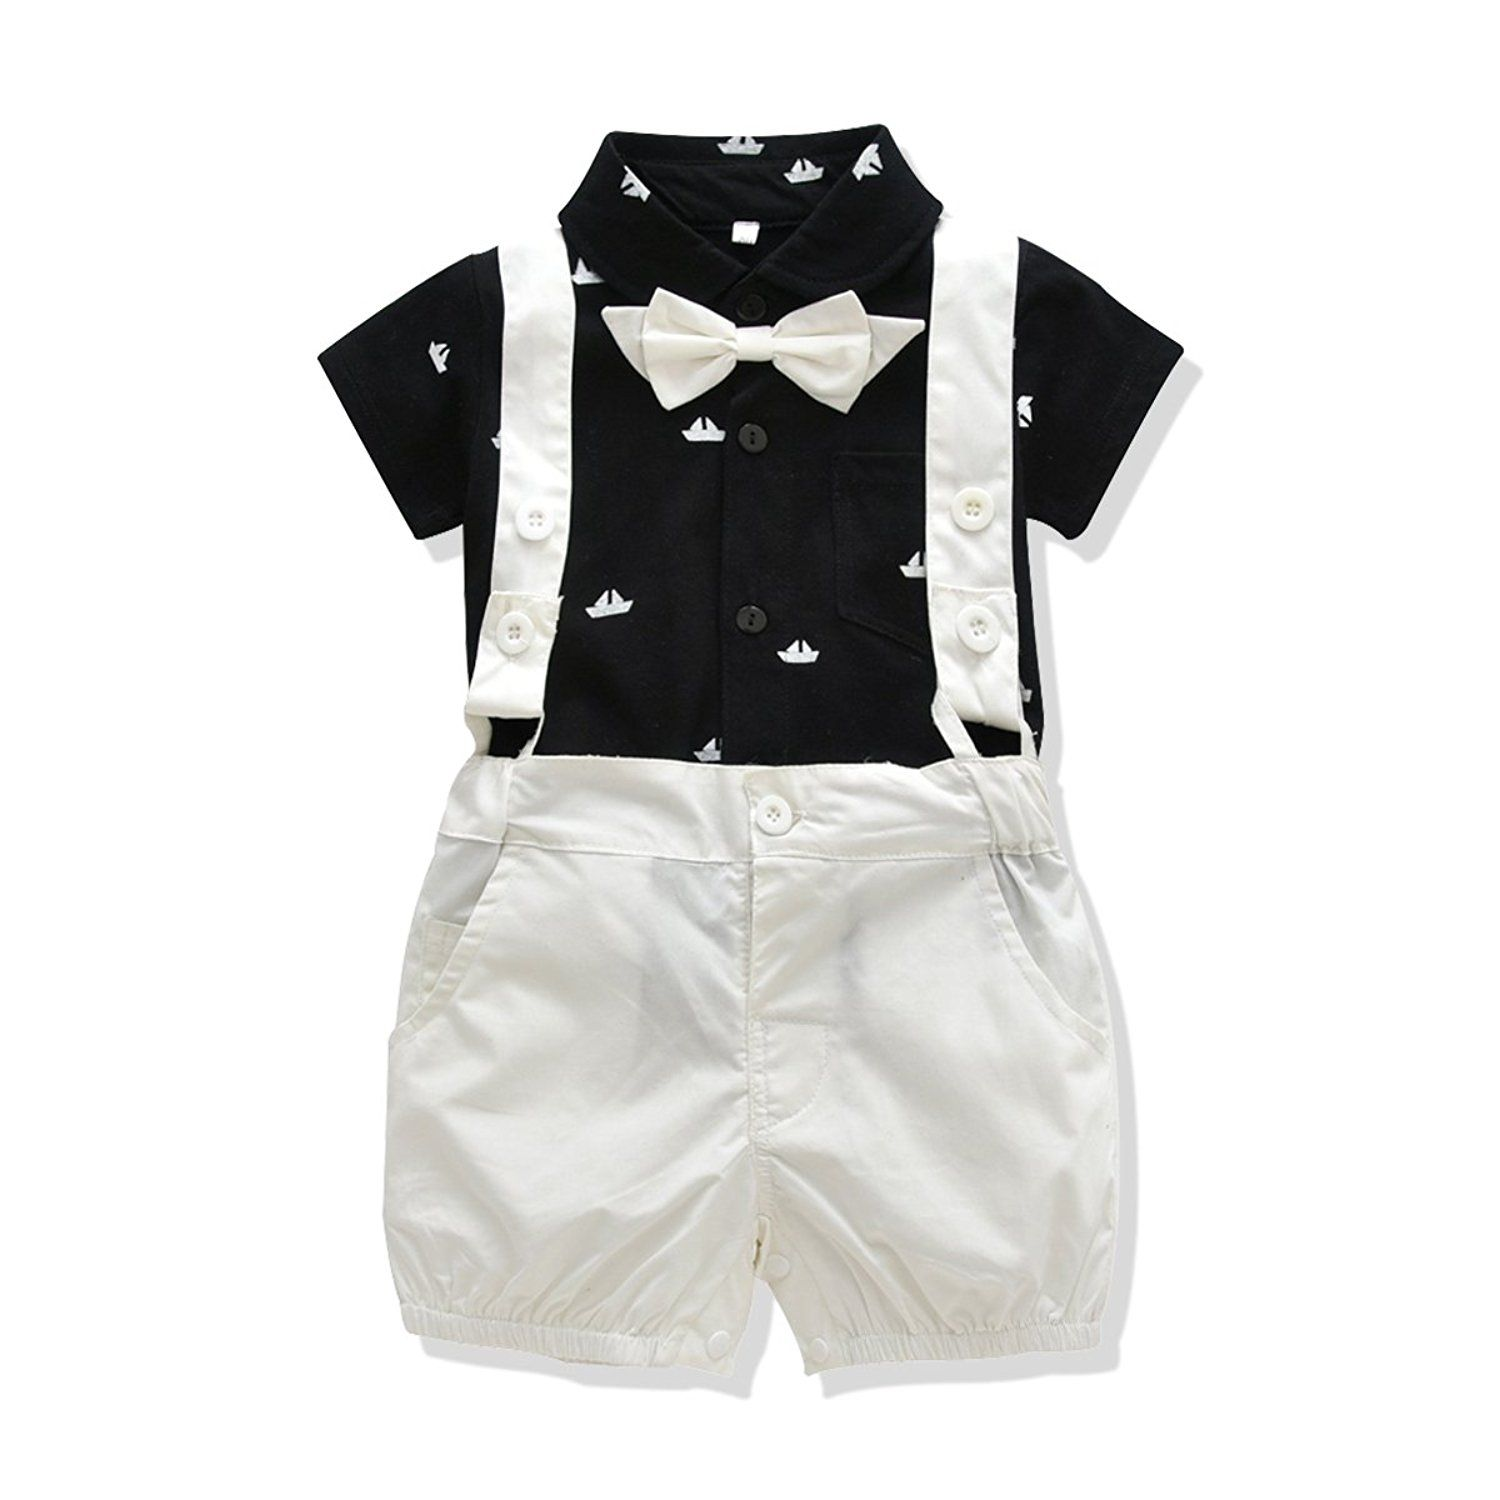 Amazon Com Ferenyi Us Baby Boys Bowtie Gentleman Romper Jumpsuit Overalls Rompers 7 12 Mont Trendy Baby Boy Clothes Baby Boy Outfits Fashionable Baby Clothes